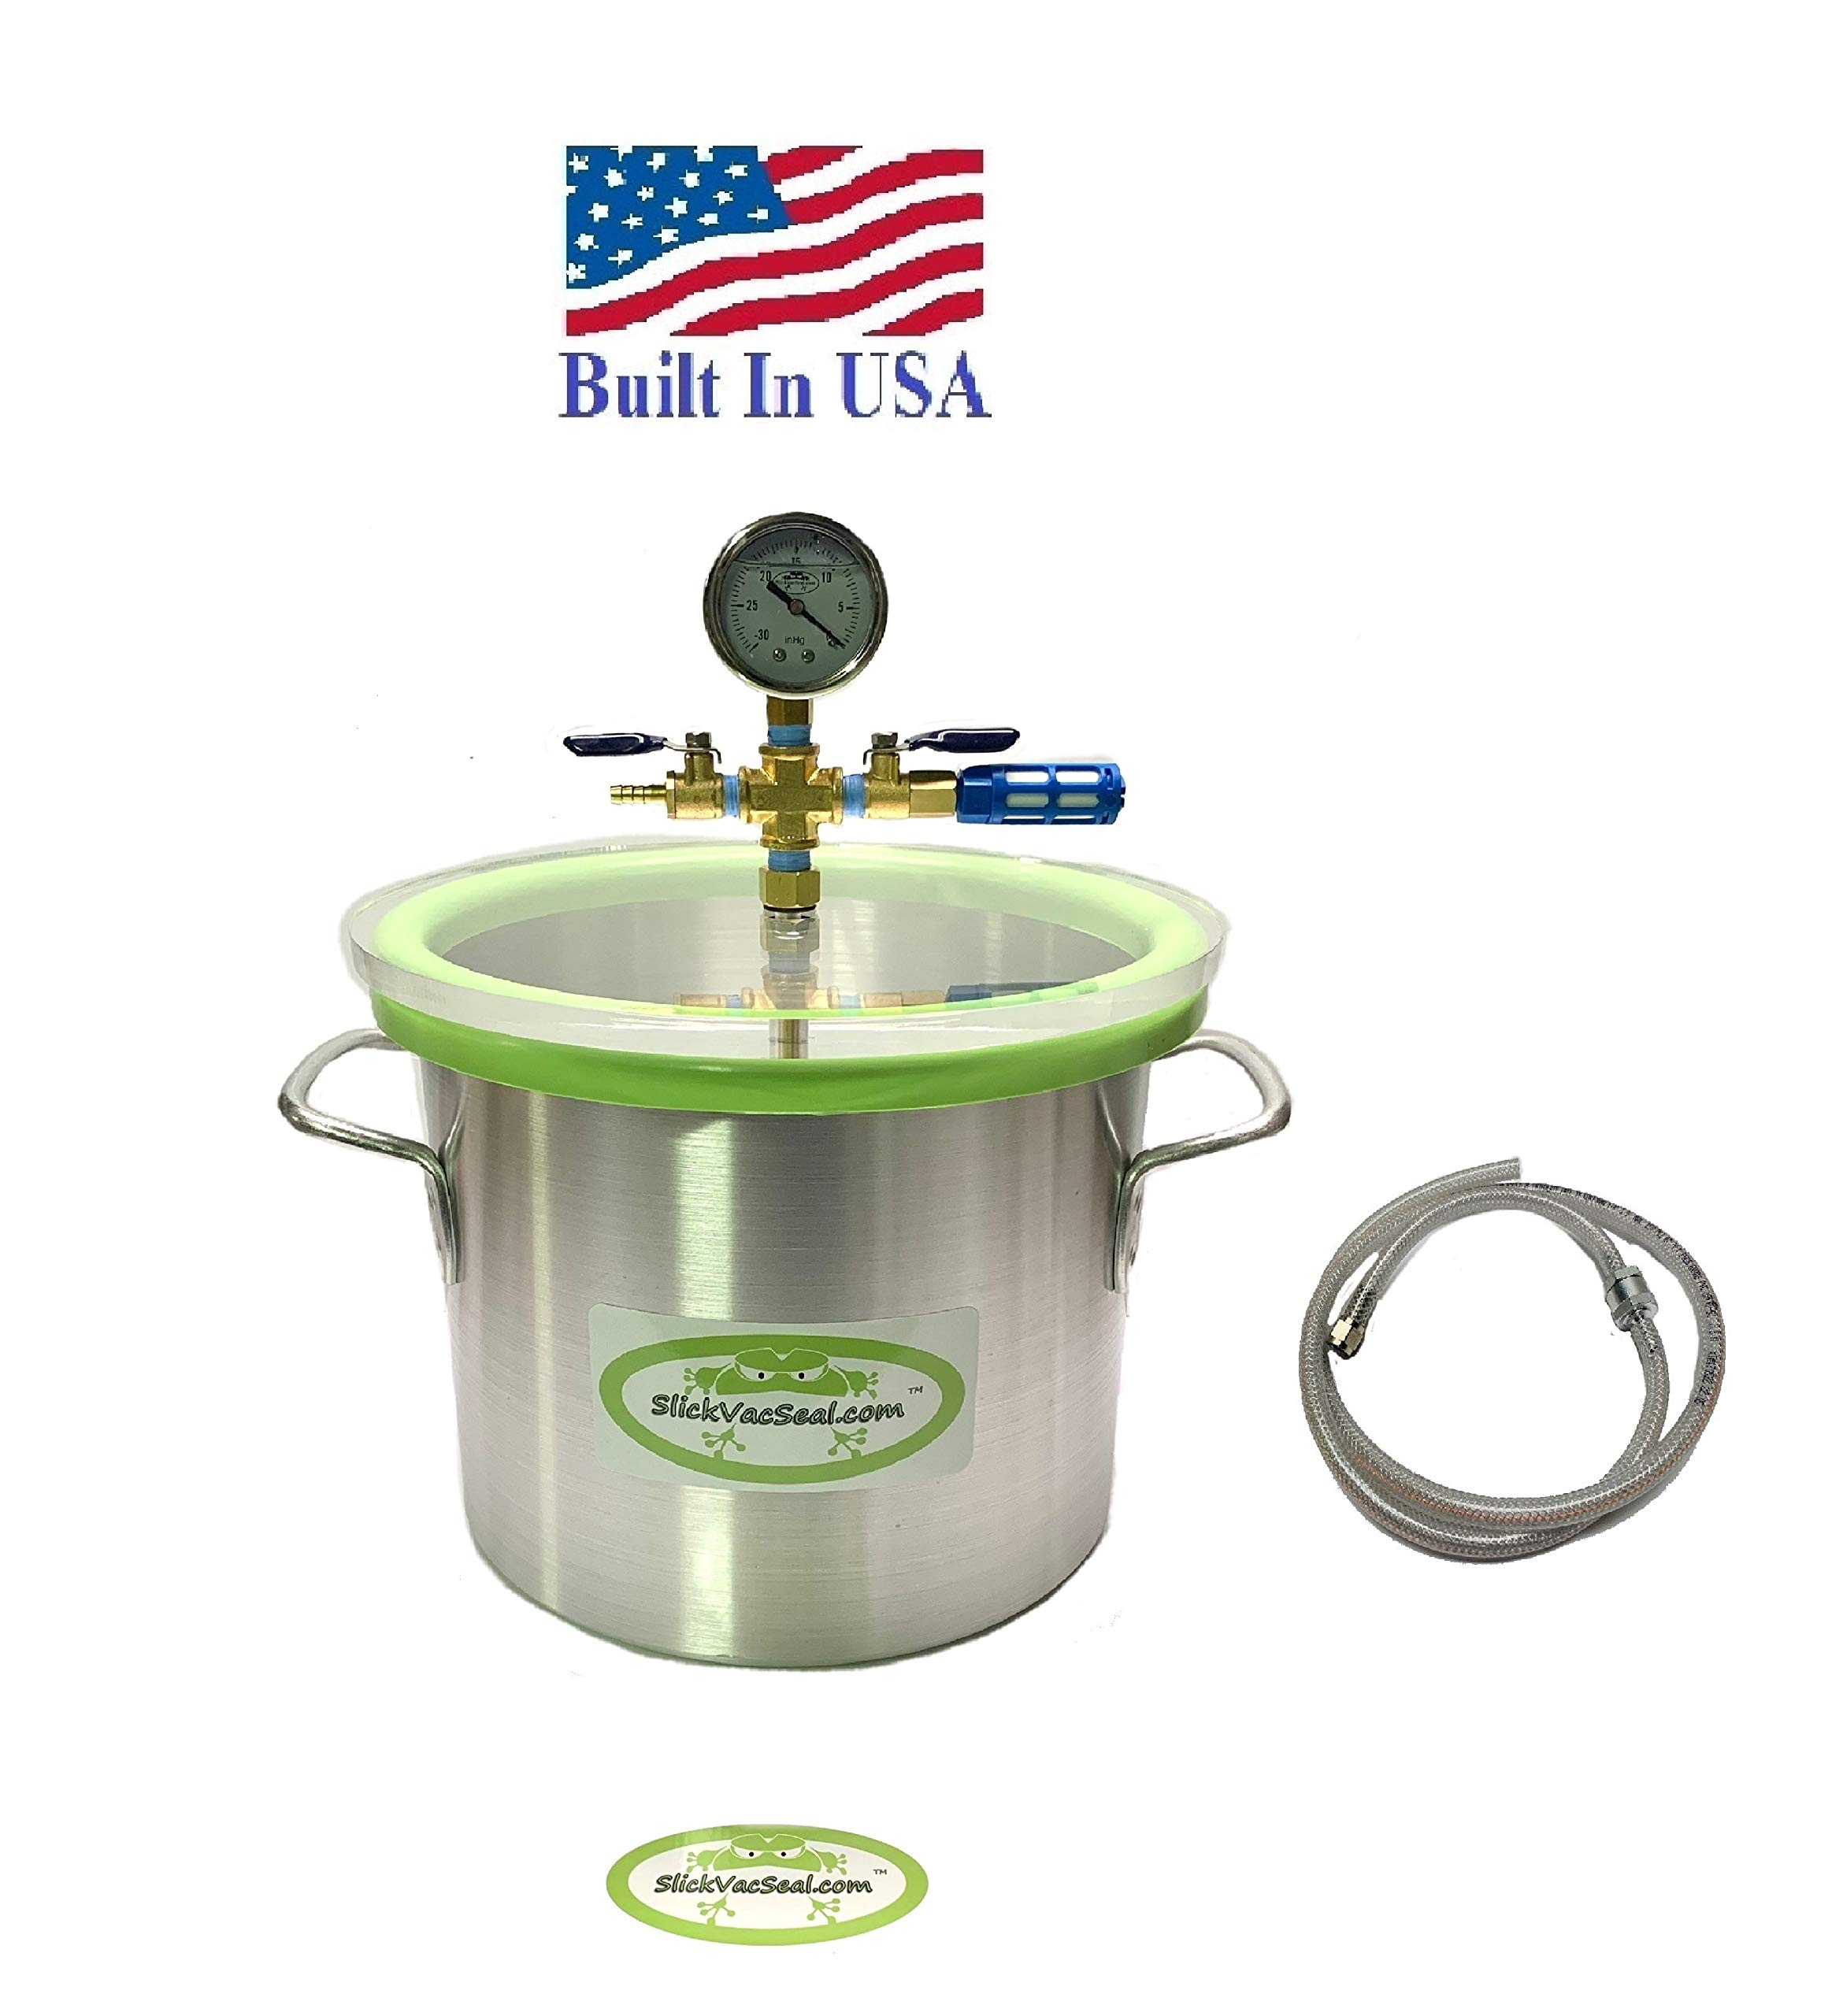 3 Gallon Aluminum Vacuum Chamber Used for Degassing Resins, Silicone and Epoxies.